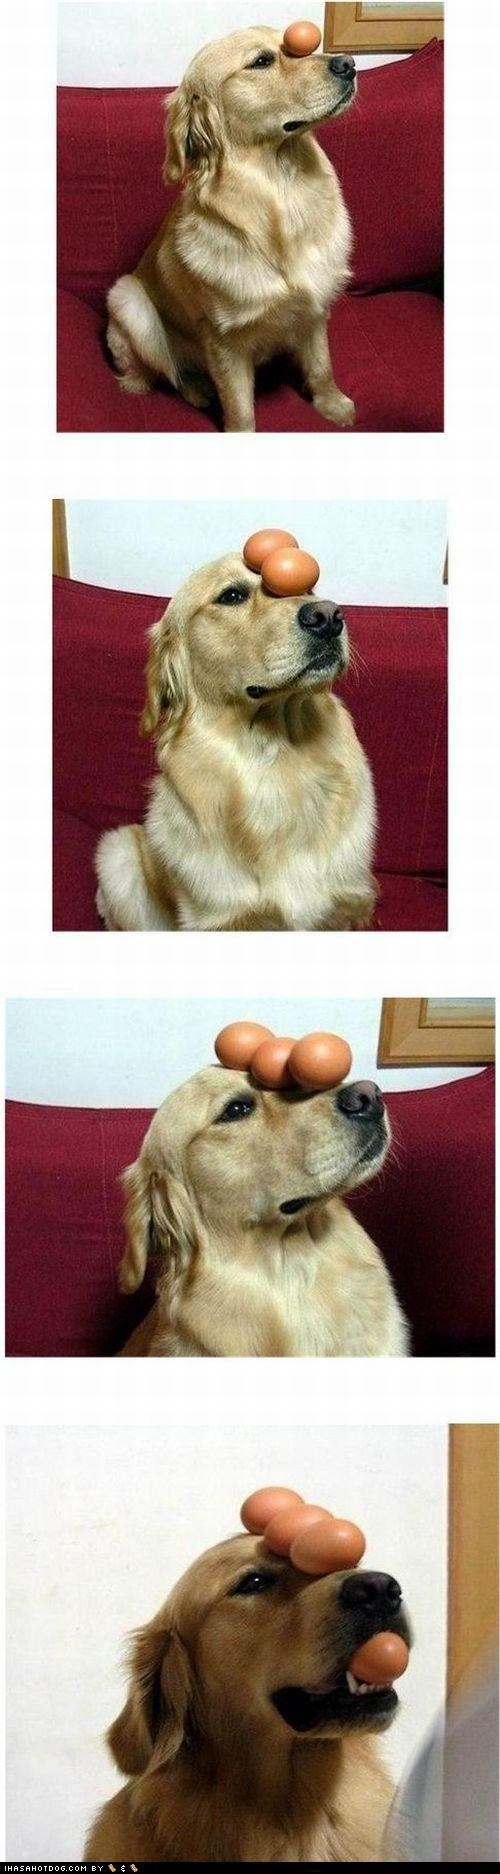 balance eggs golden retriever nose - 4896678912